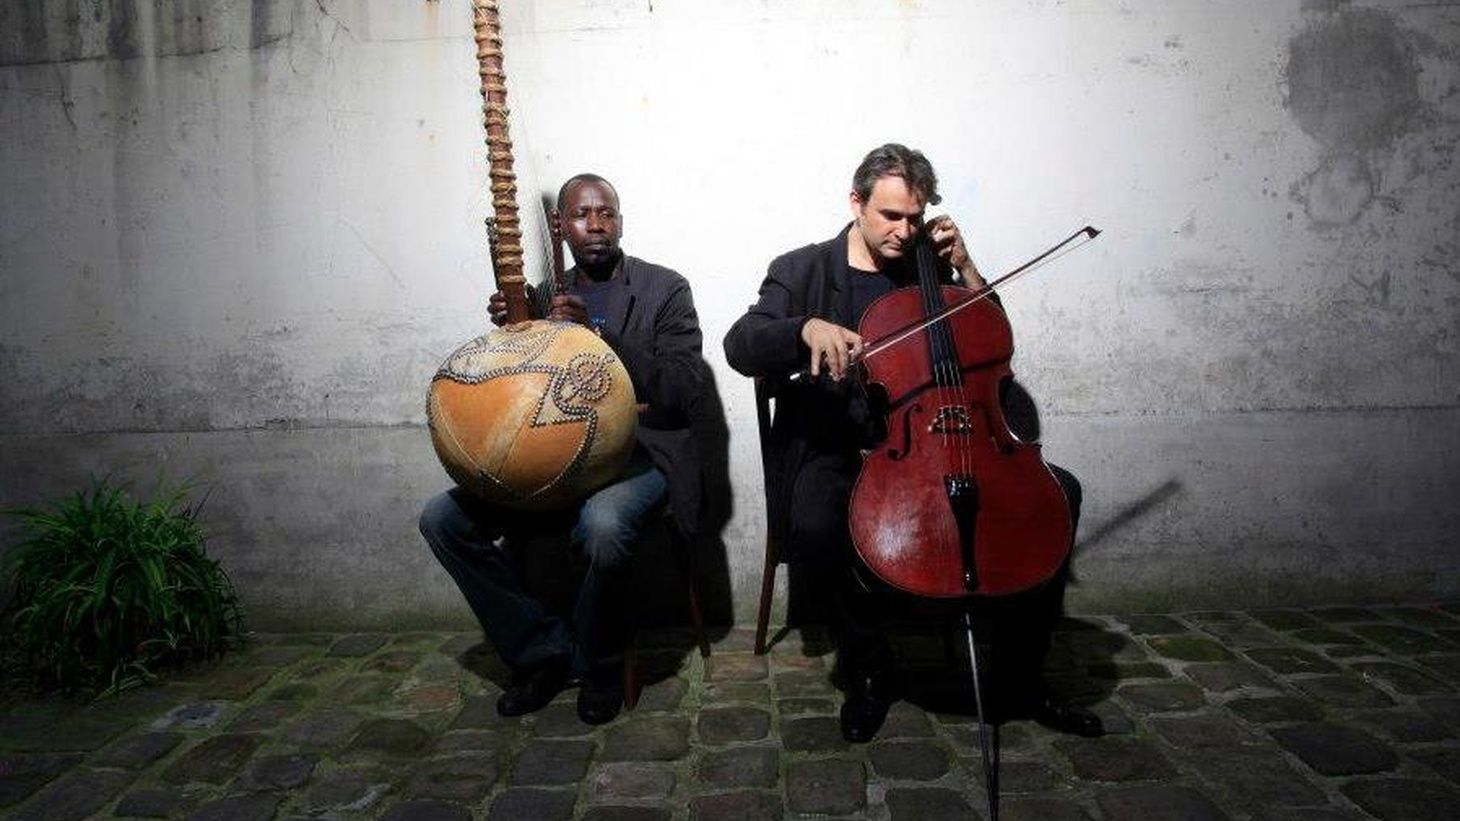 The soothing tones of Malian Ballaké Sissoko's kora create a musical dialogue with the cello sounds of Vincent Segal on this recording of beautiful chamber music.